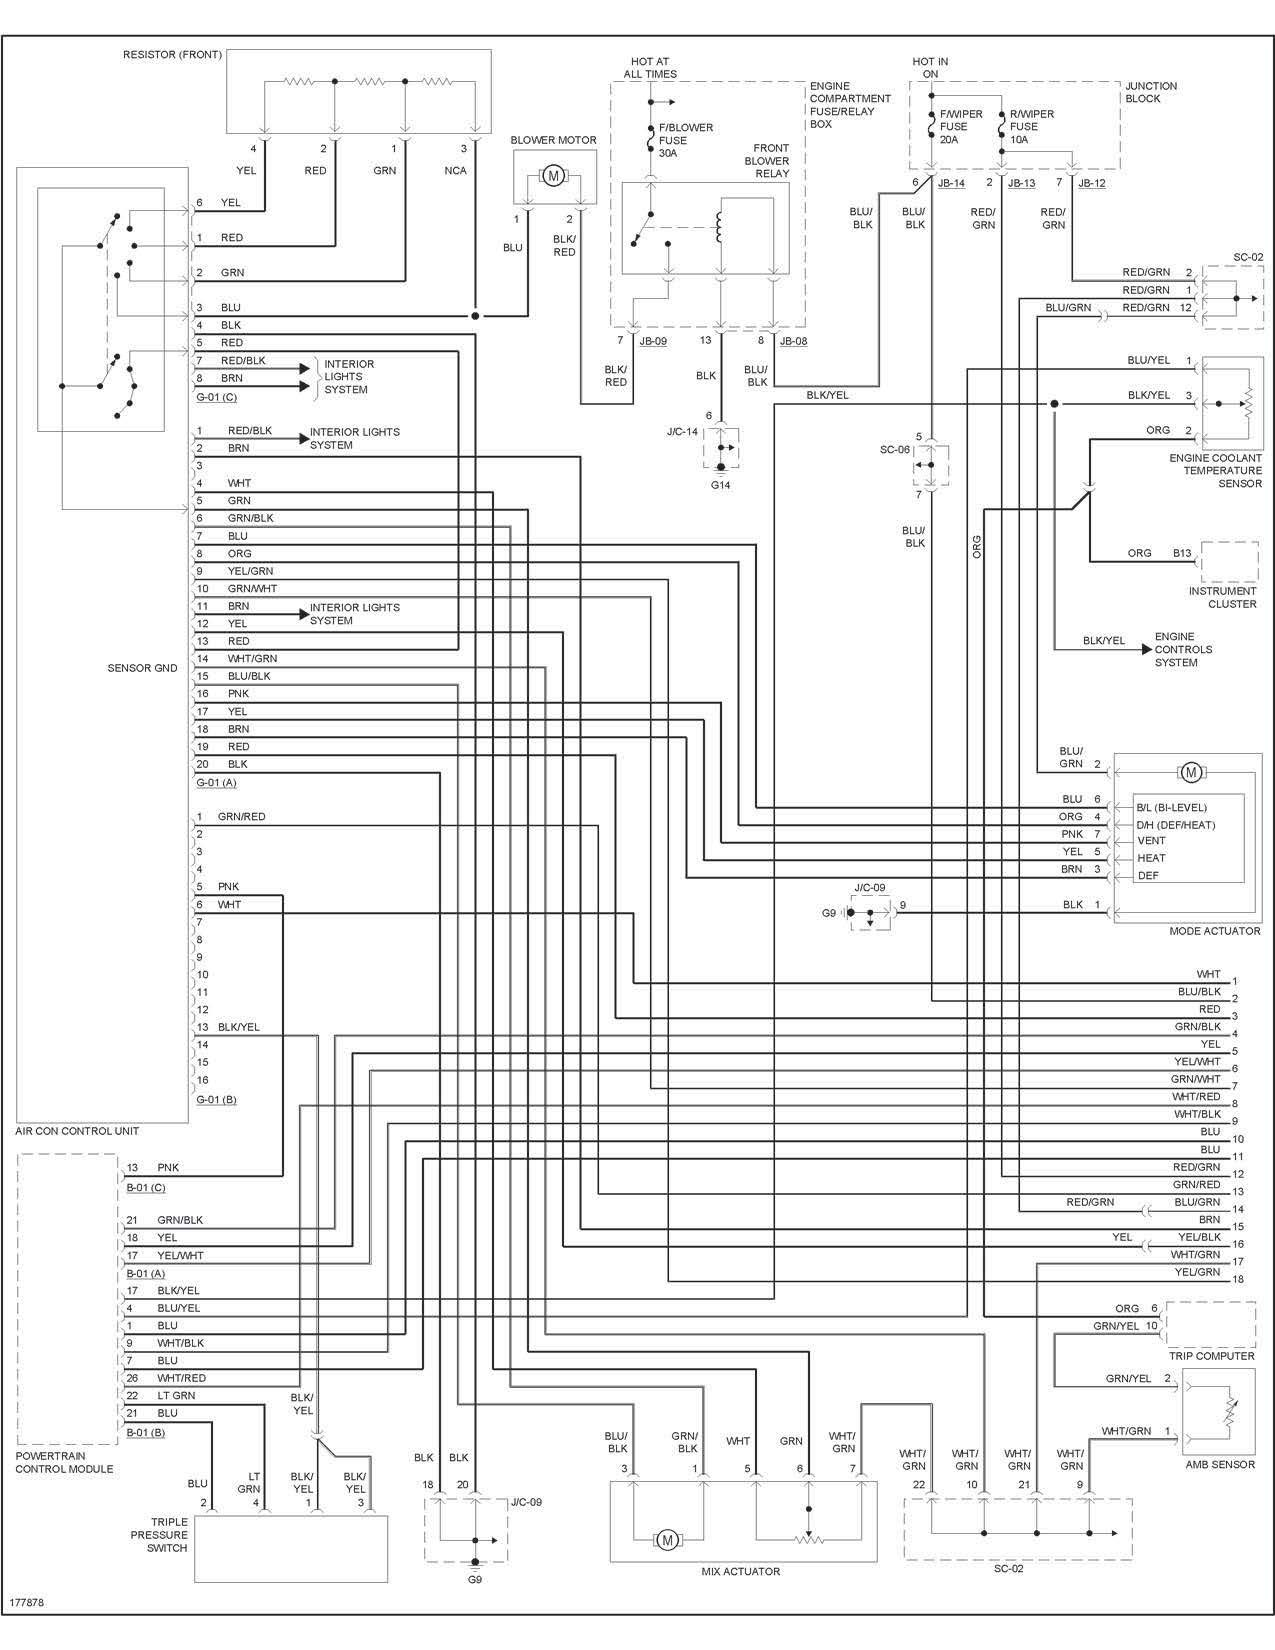 Diagram 2009 Kia Sedona Radio Wiring Diagram Full Version Hd Quality Wiring Diagram Stvfuse8449 Itcmolari It